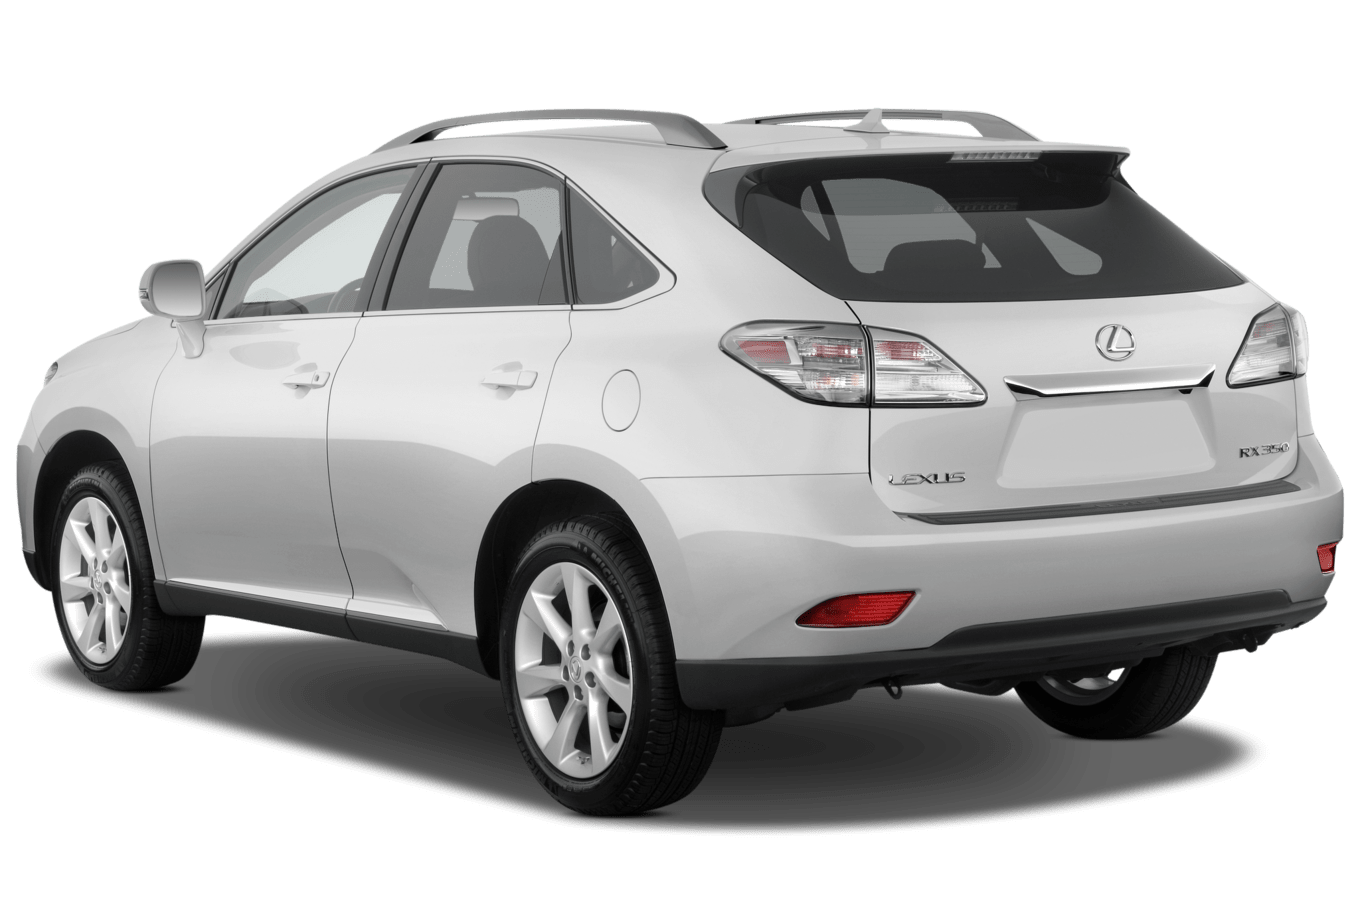 2010 Lexus RX350 Reviews and Rating